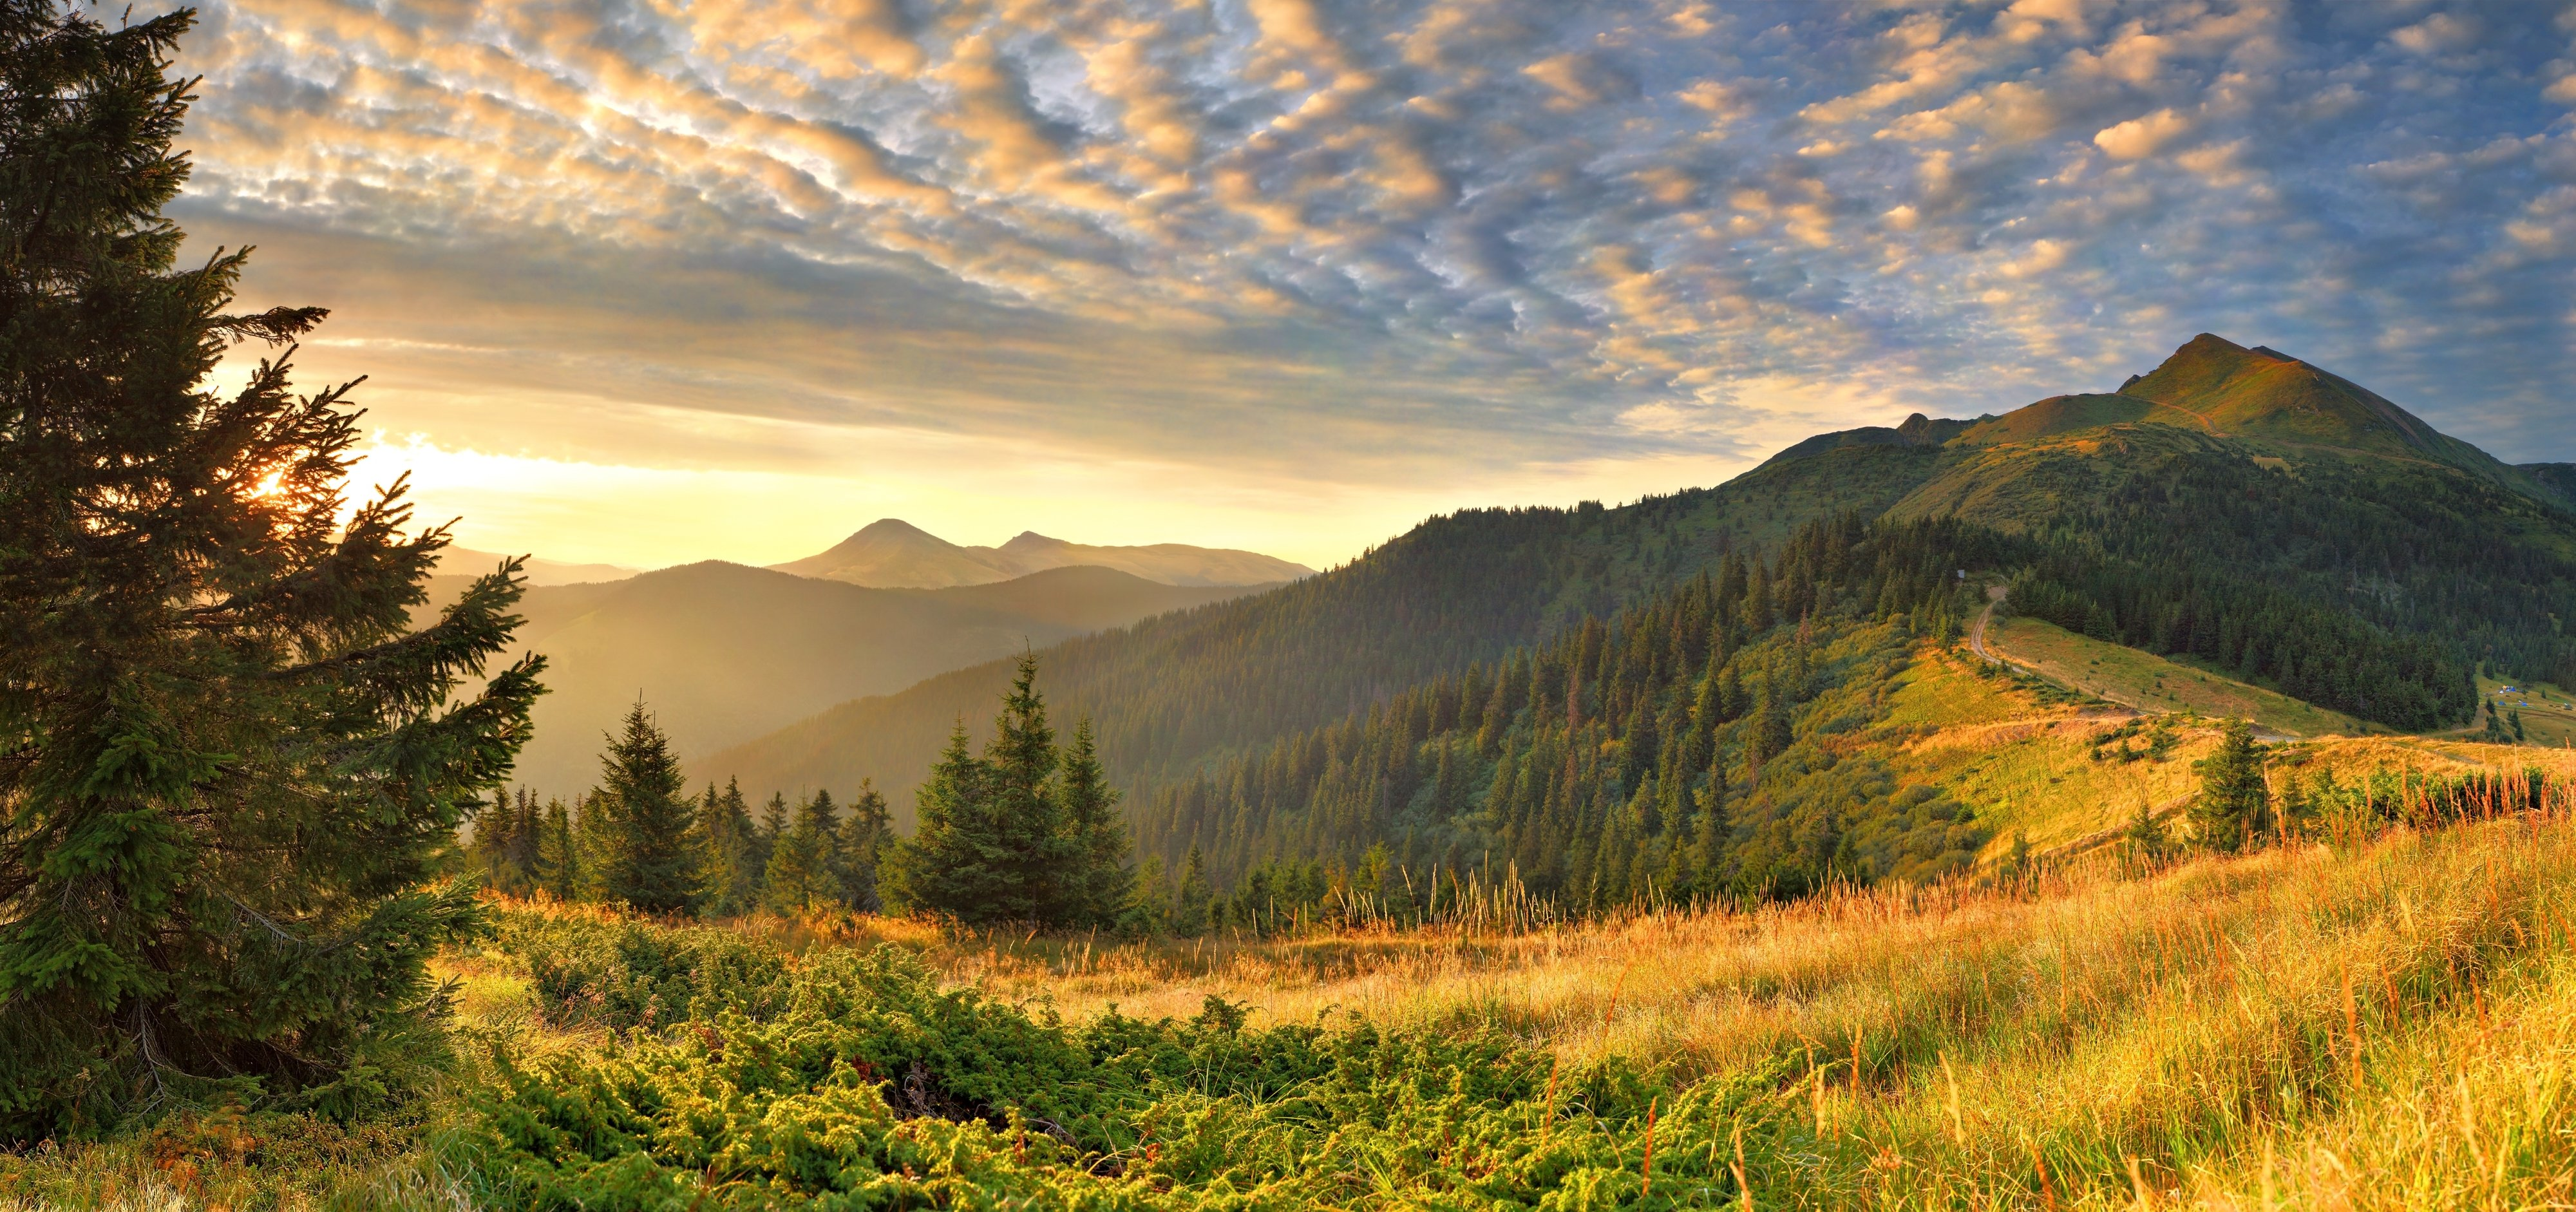 Free Download Landscape Wallpaper Background 4000x1882 For Your